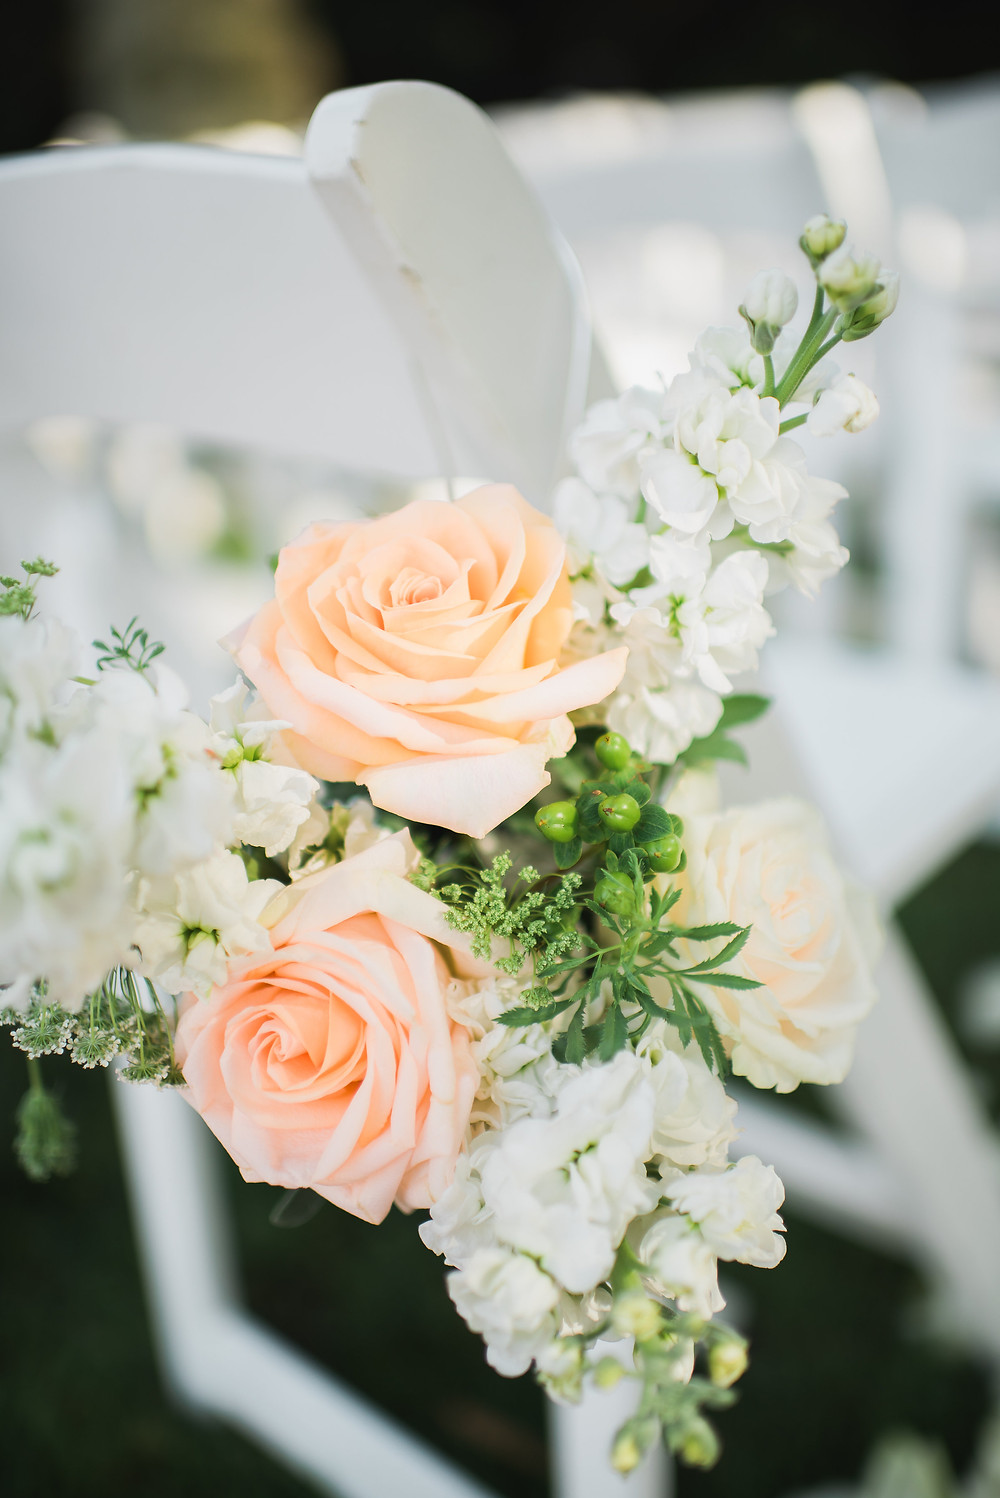 Aisle chair flowers | Visual Impact Design wedding flowers | Custock Photography